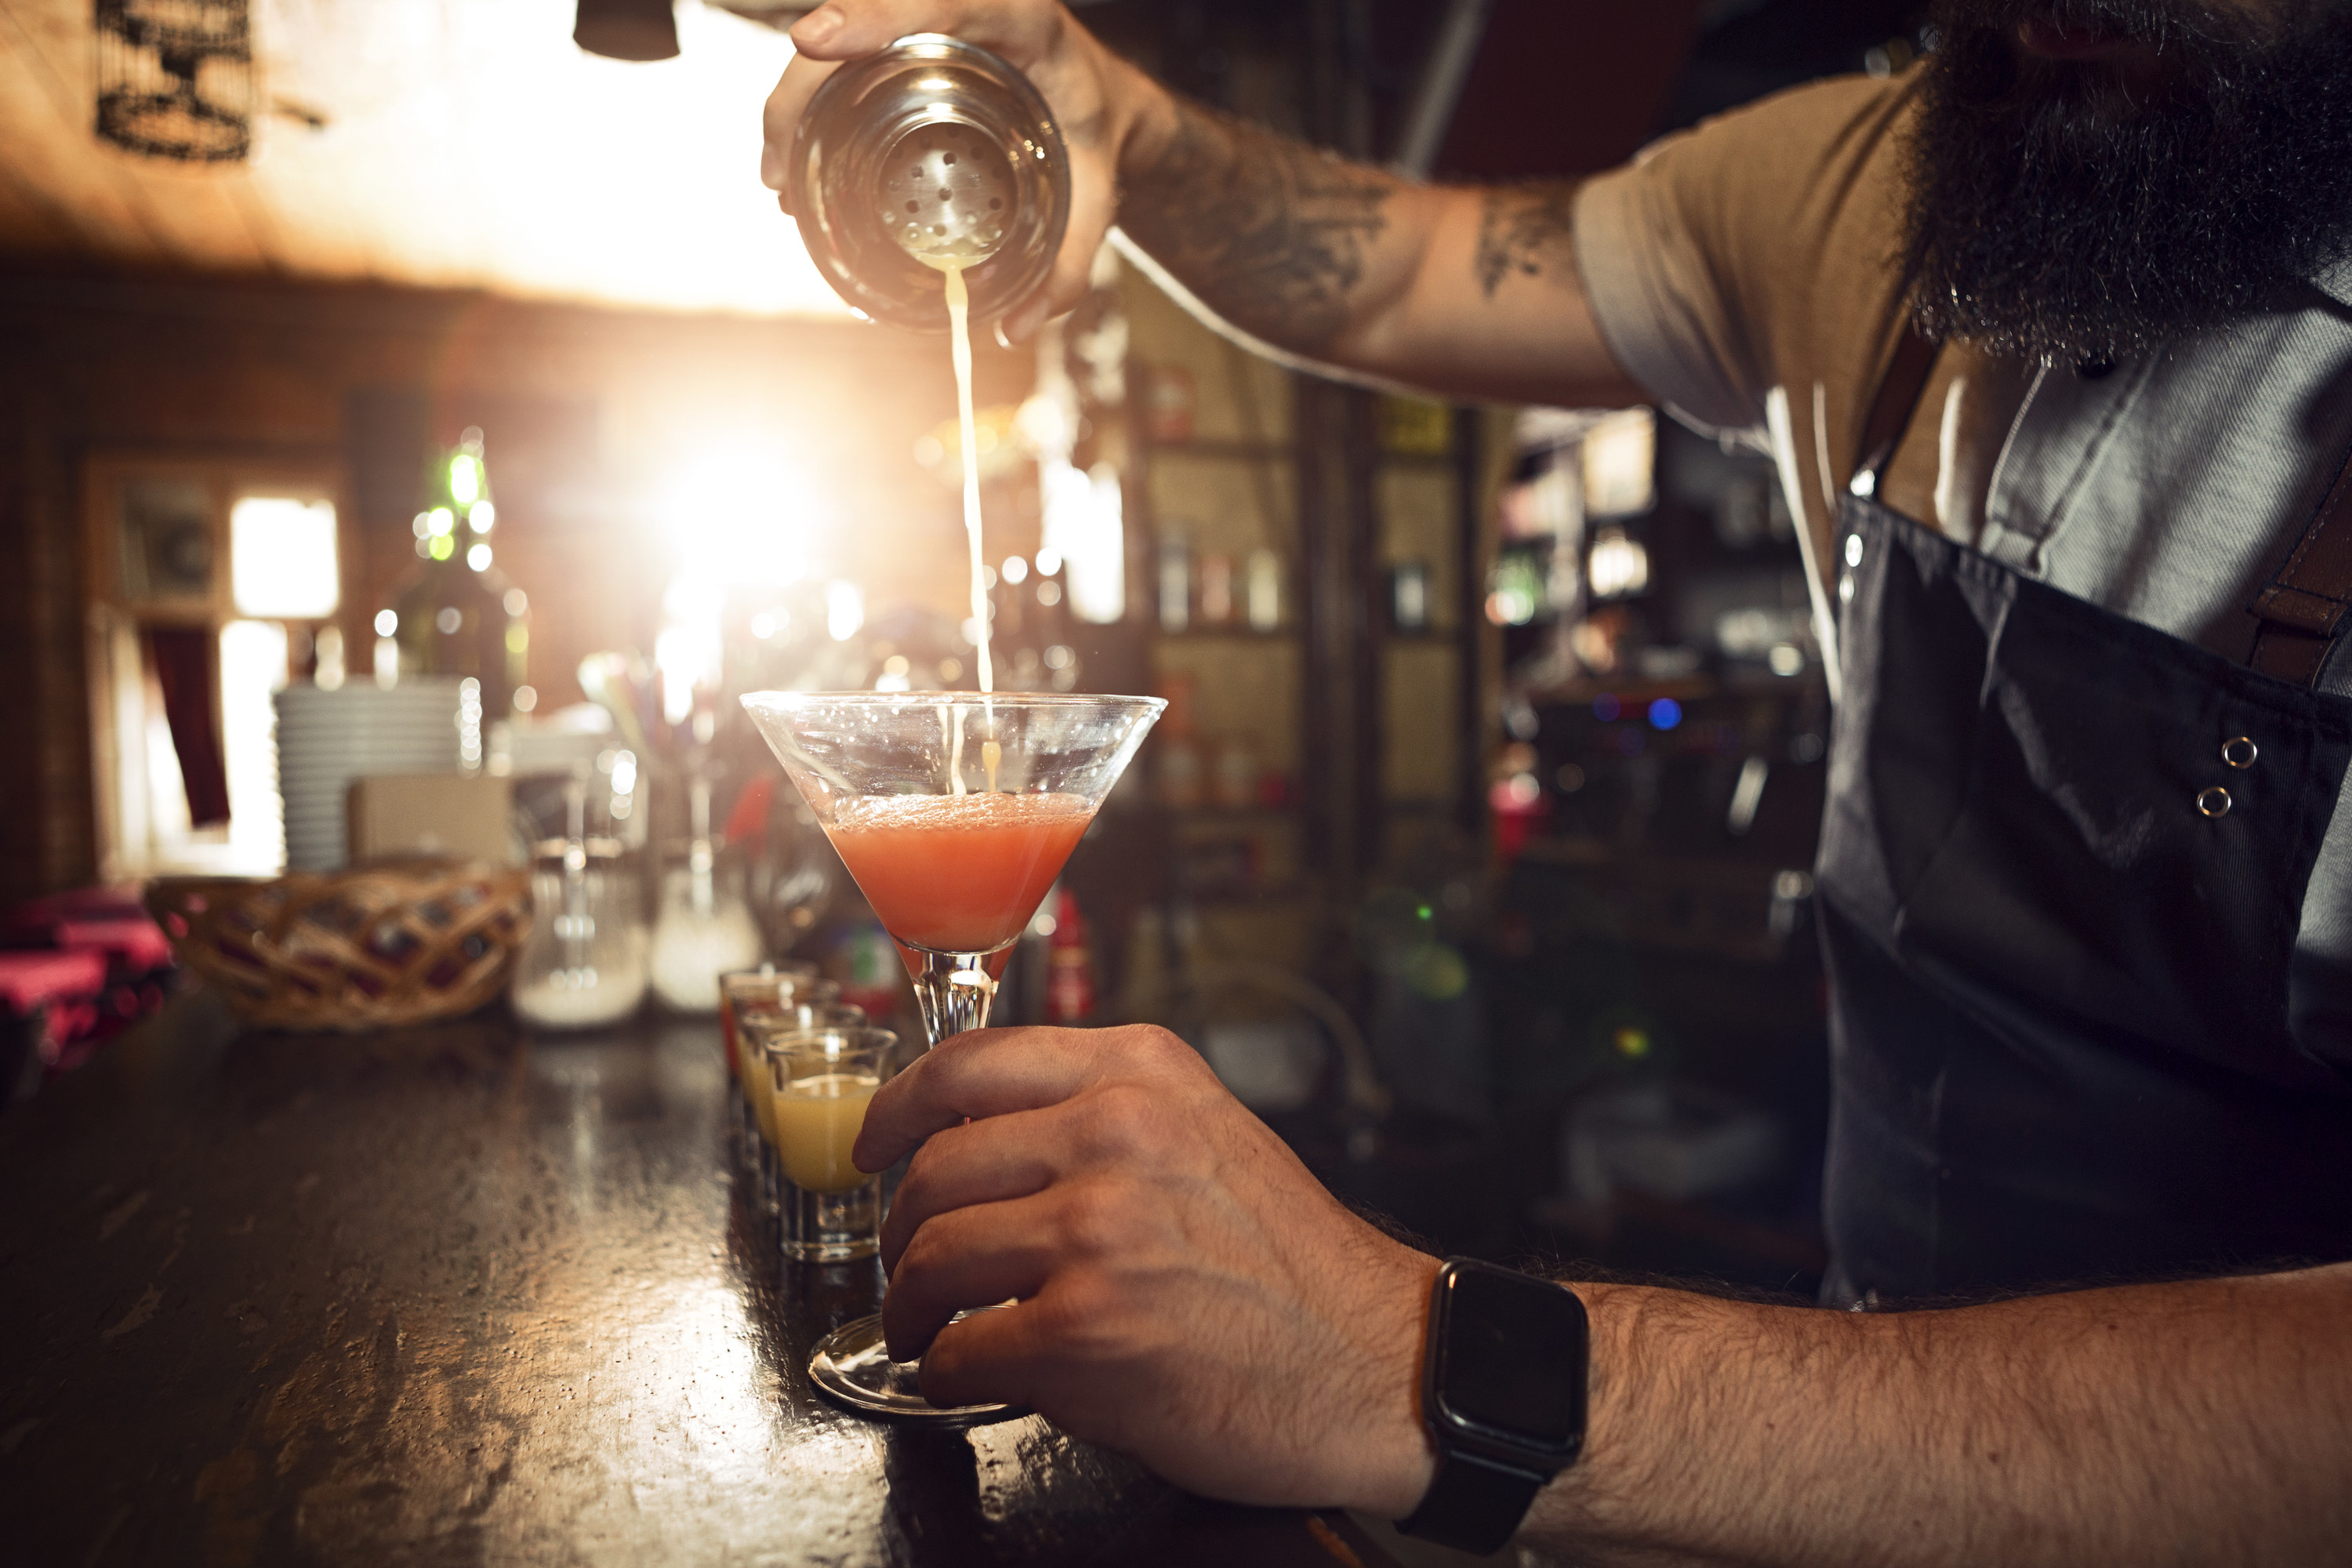 Bartender pouring a frothy drink into a martini glass.